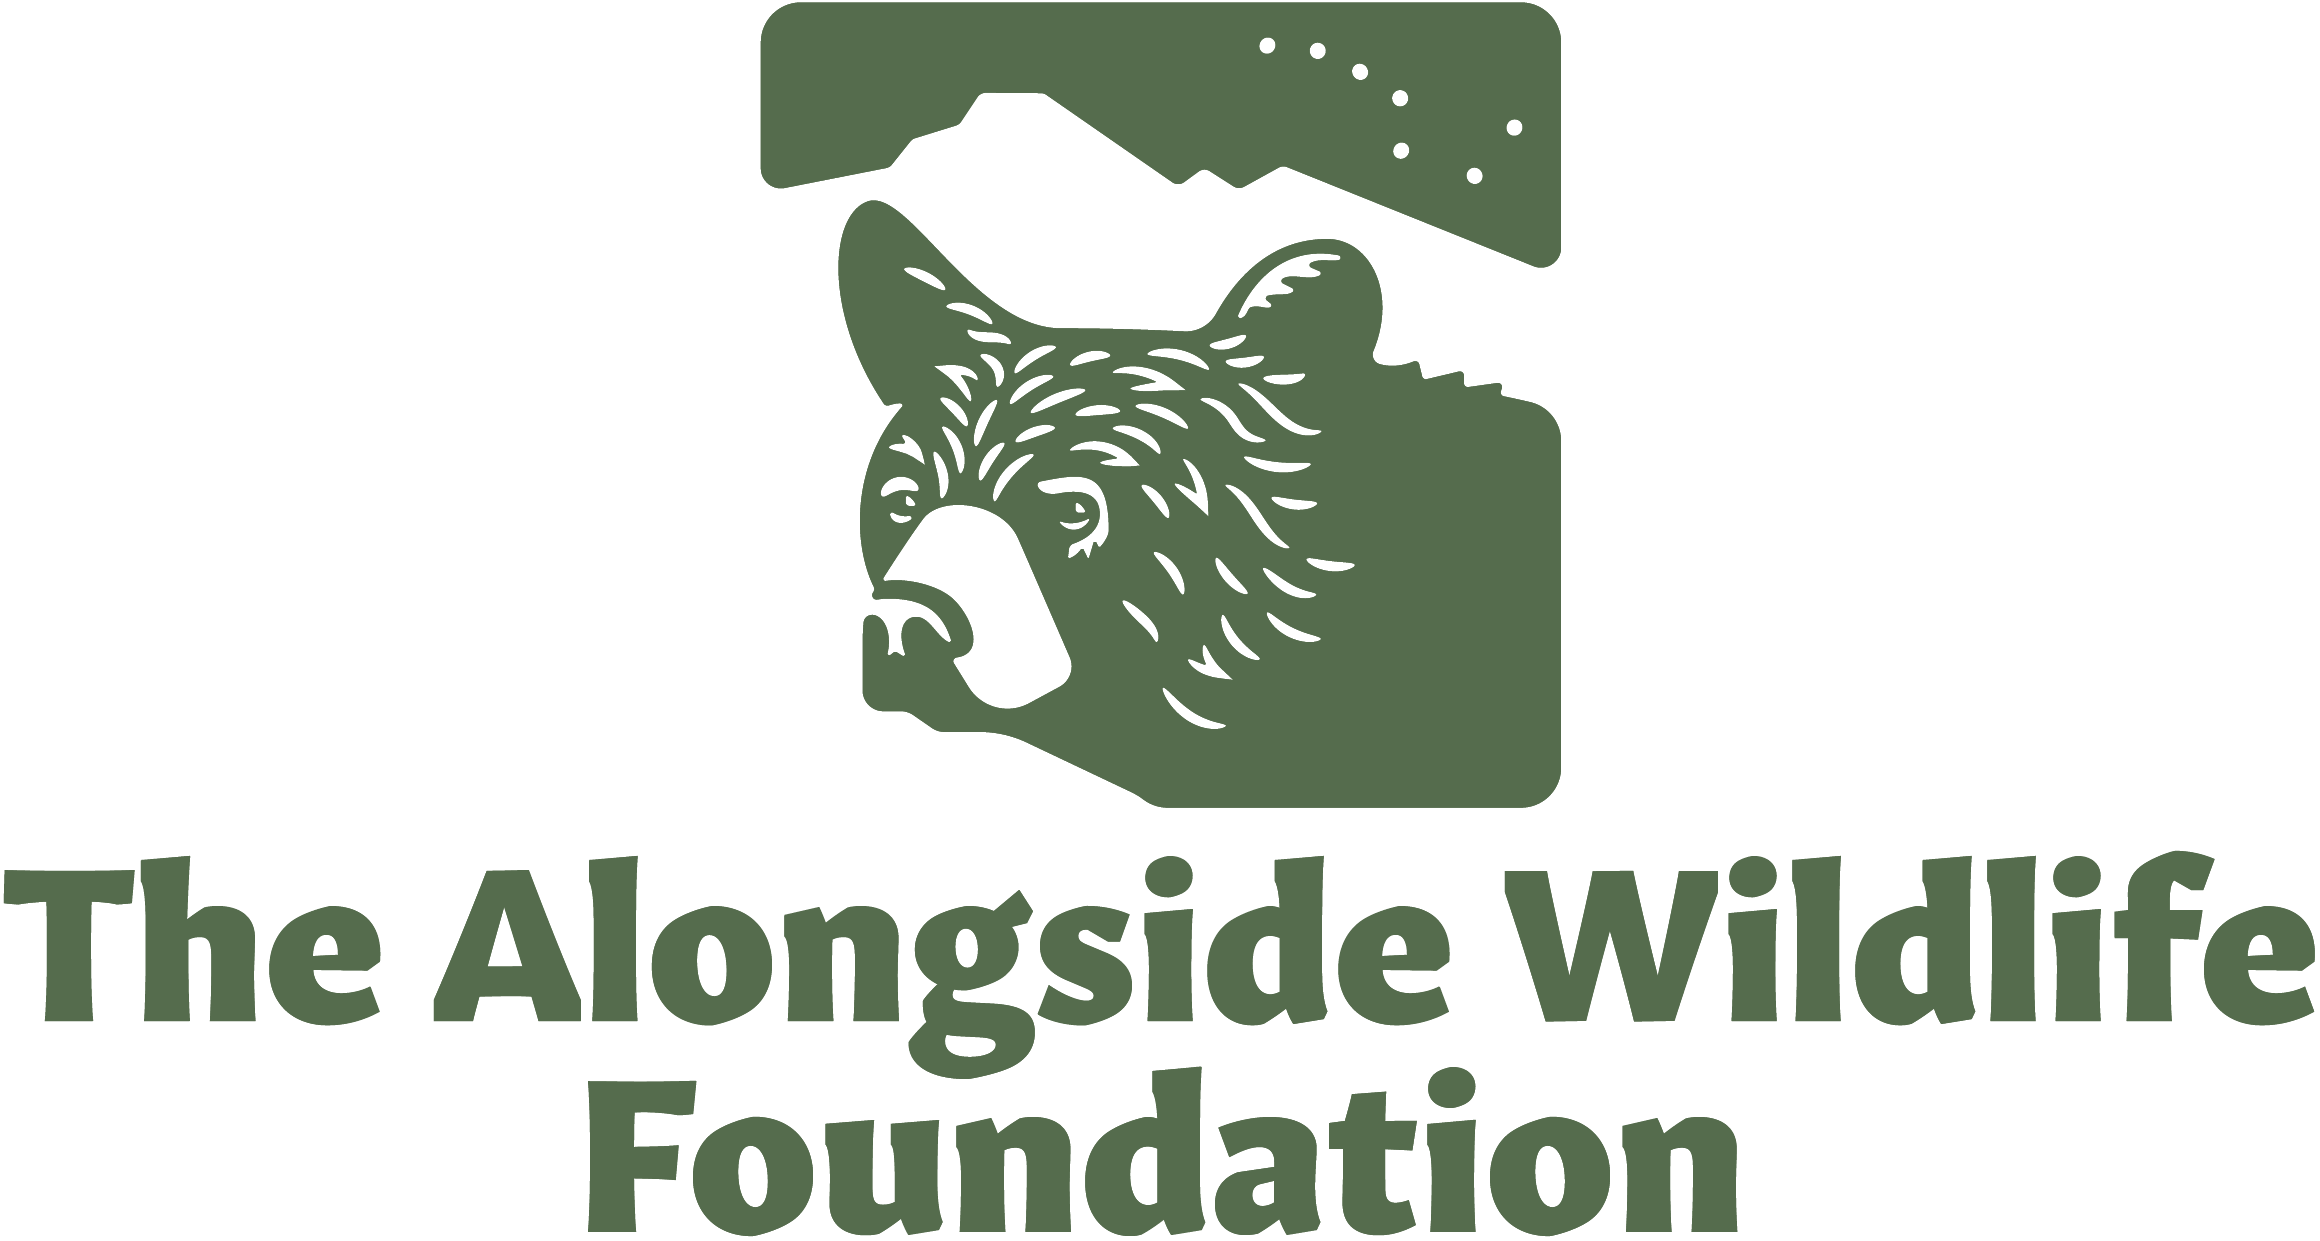 The Alongside Wildlife Foundation logotype, featuring a black bear in profile. Green artwork above green text.